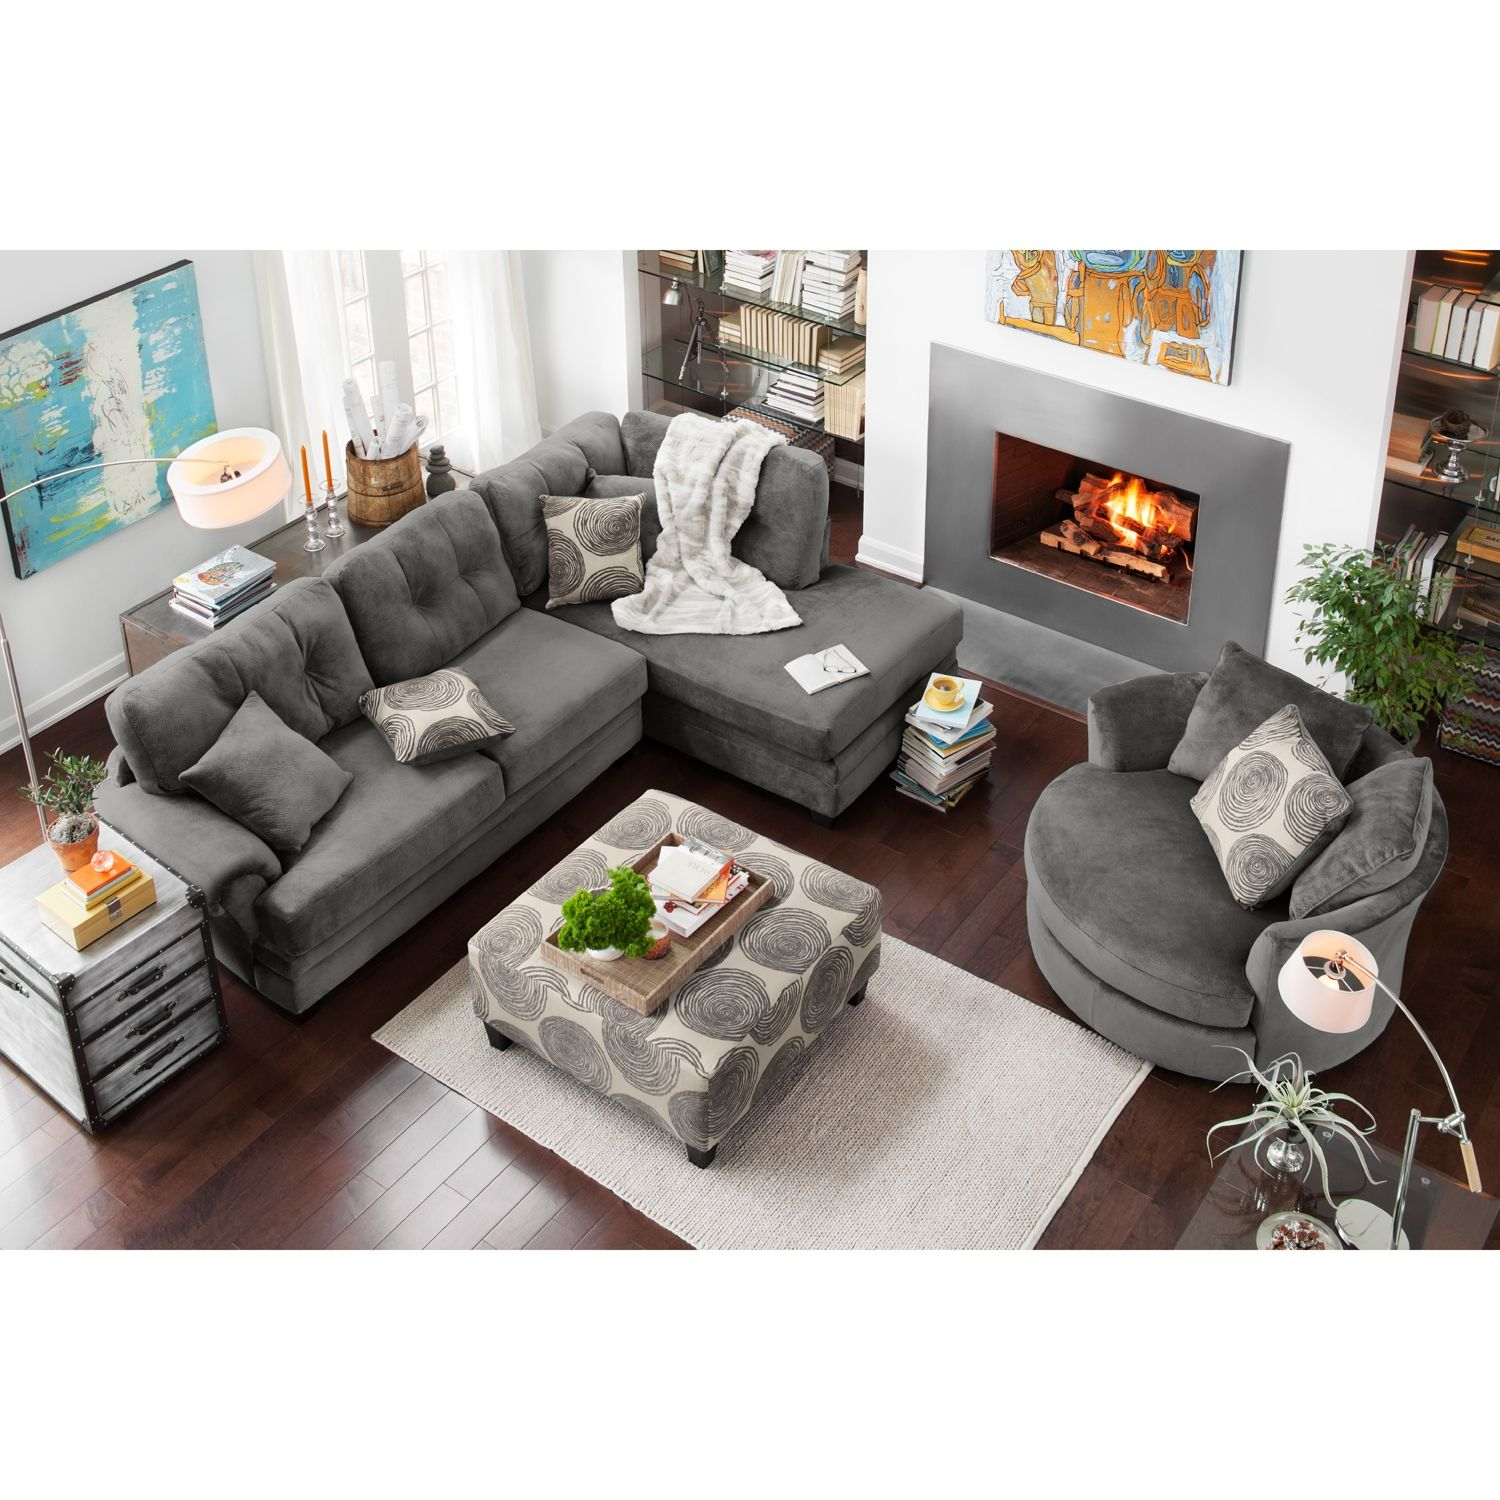 Cordelle 2 piece right facing chaise sectional gray value city furniture home decorating - Two sofa living room design ...